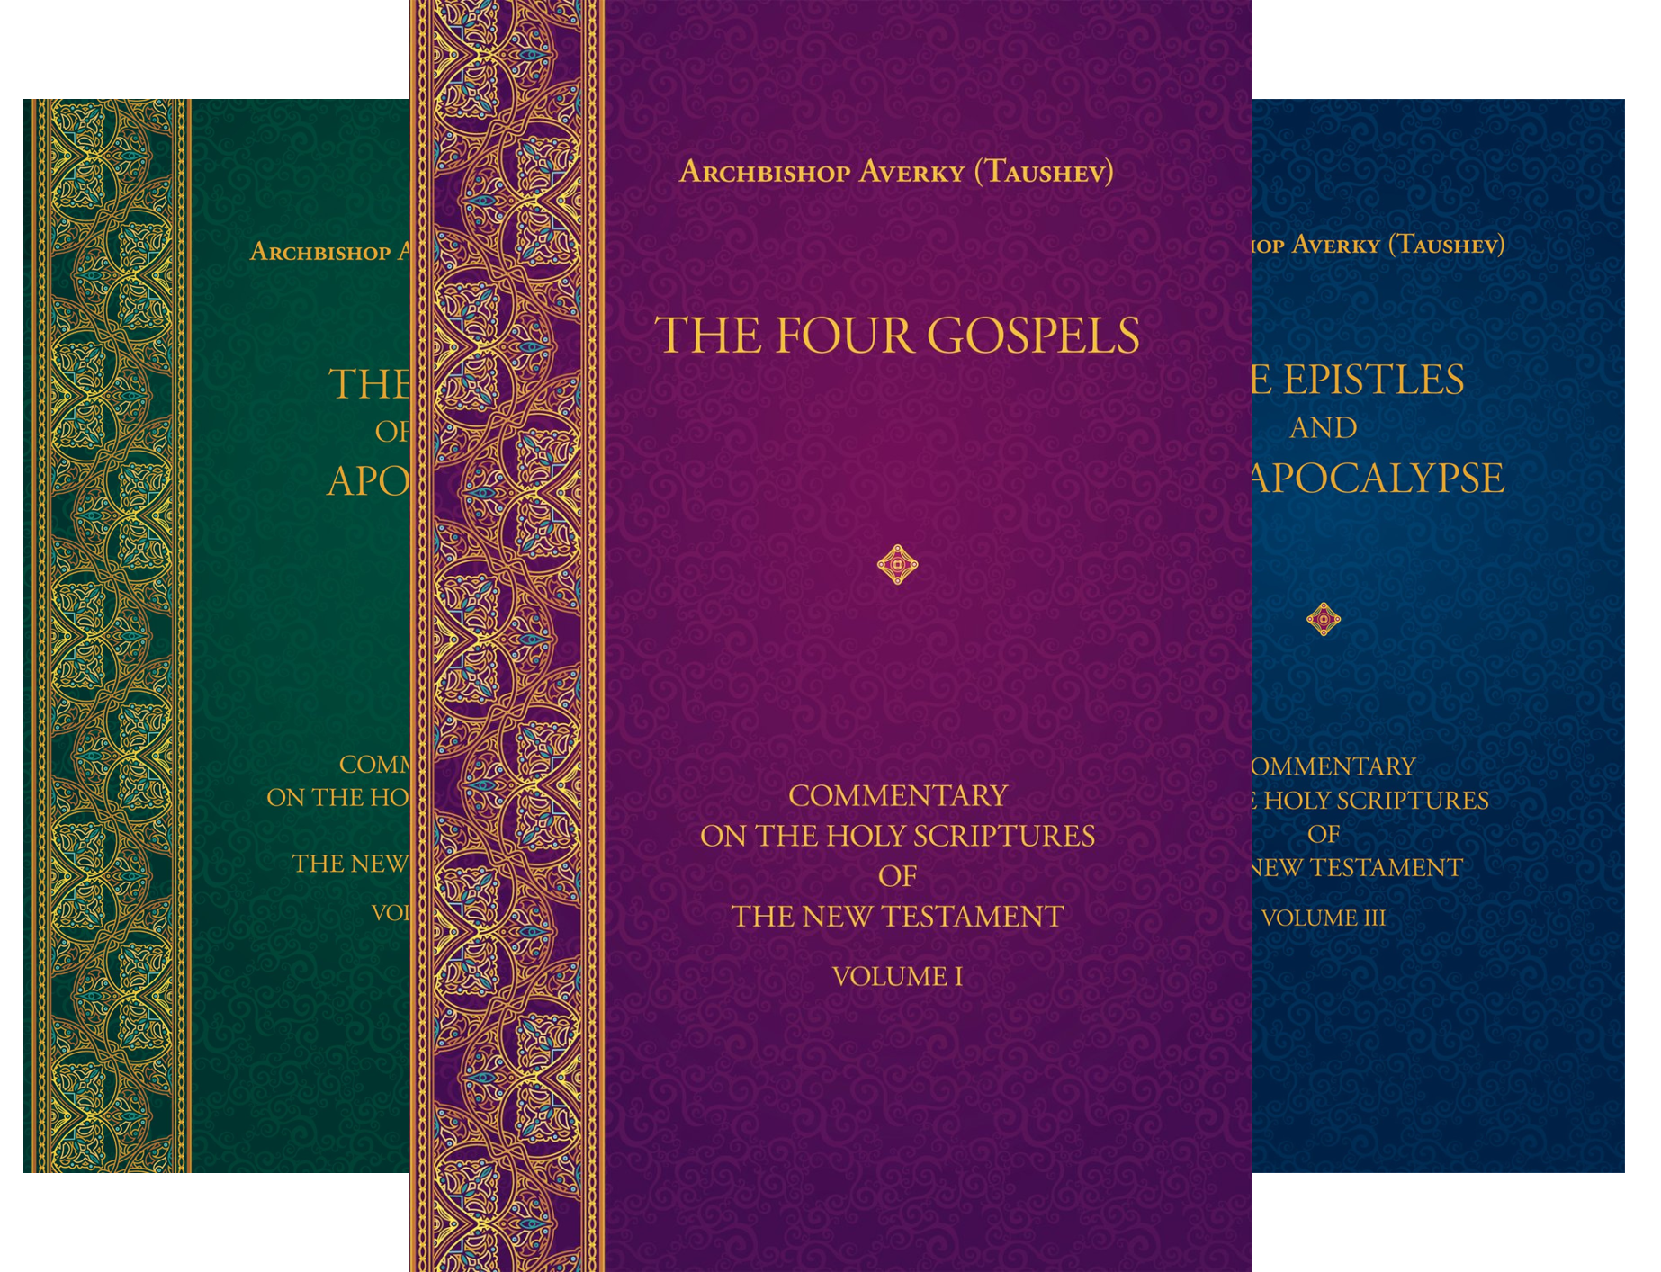 Commentary on the Holy Scriptures of the New Testament (3 Book Series)